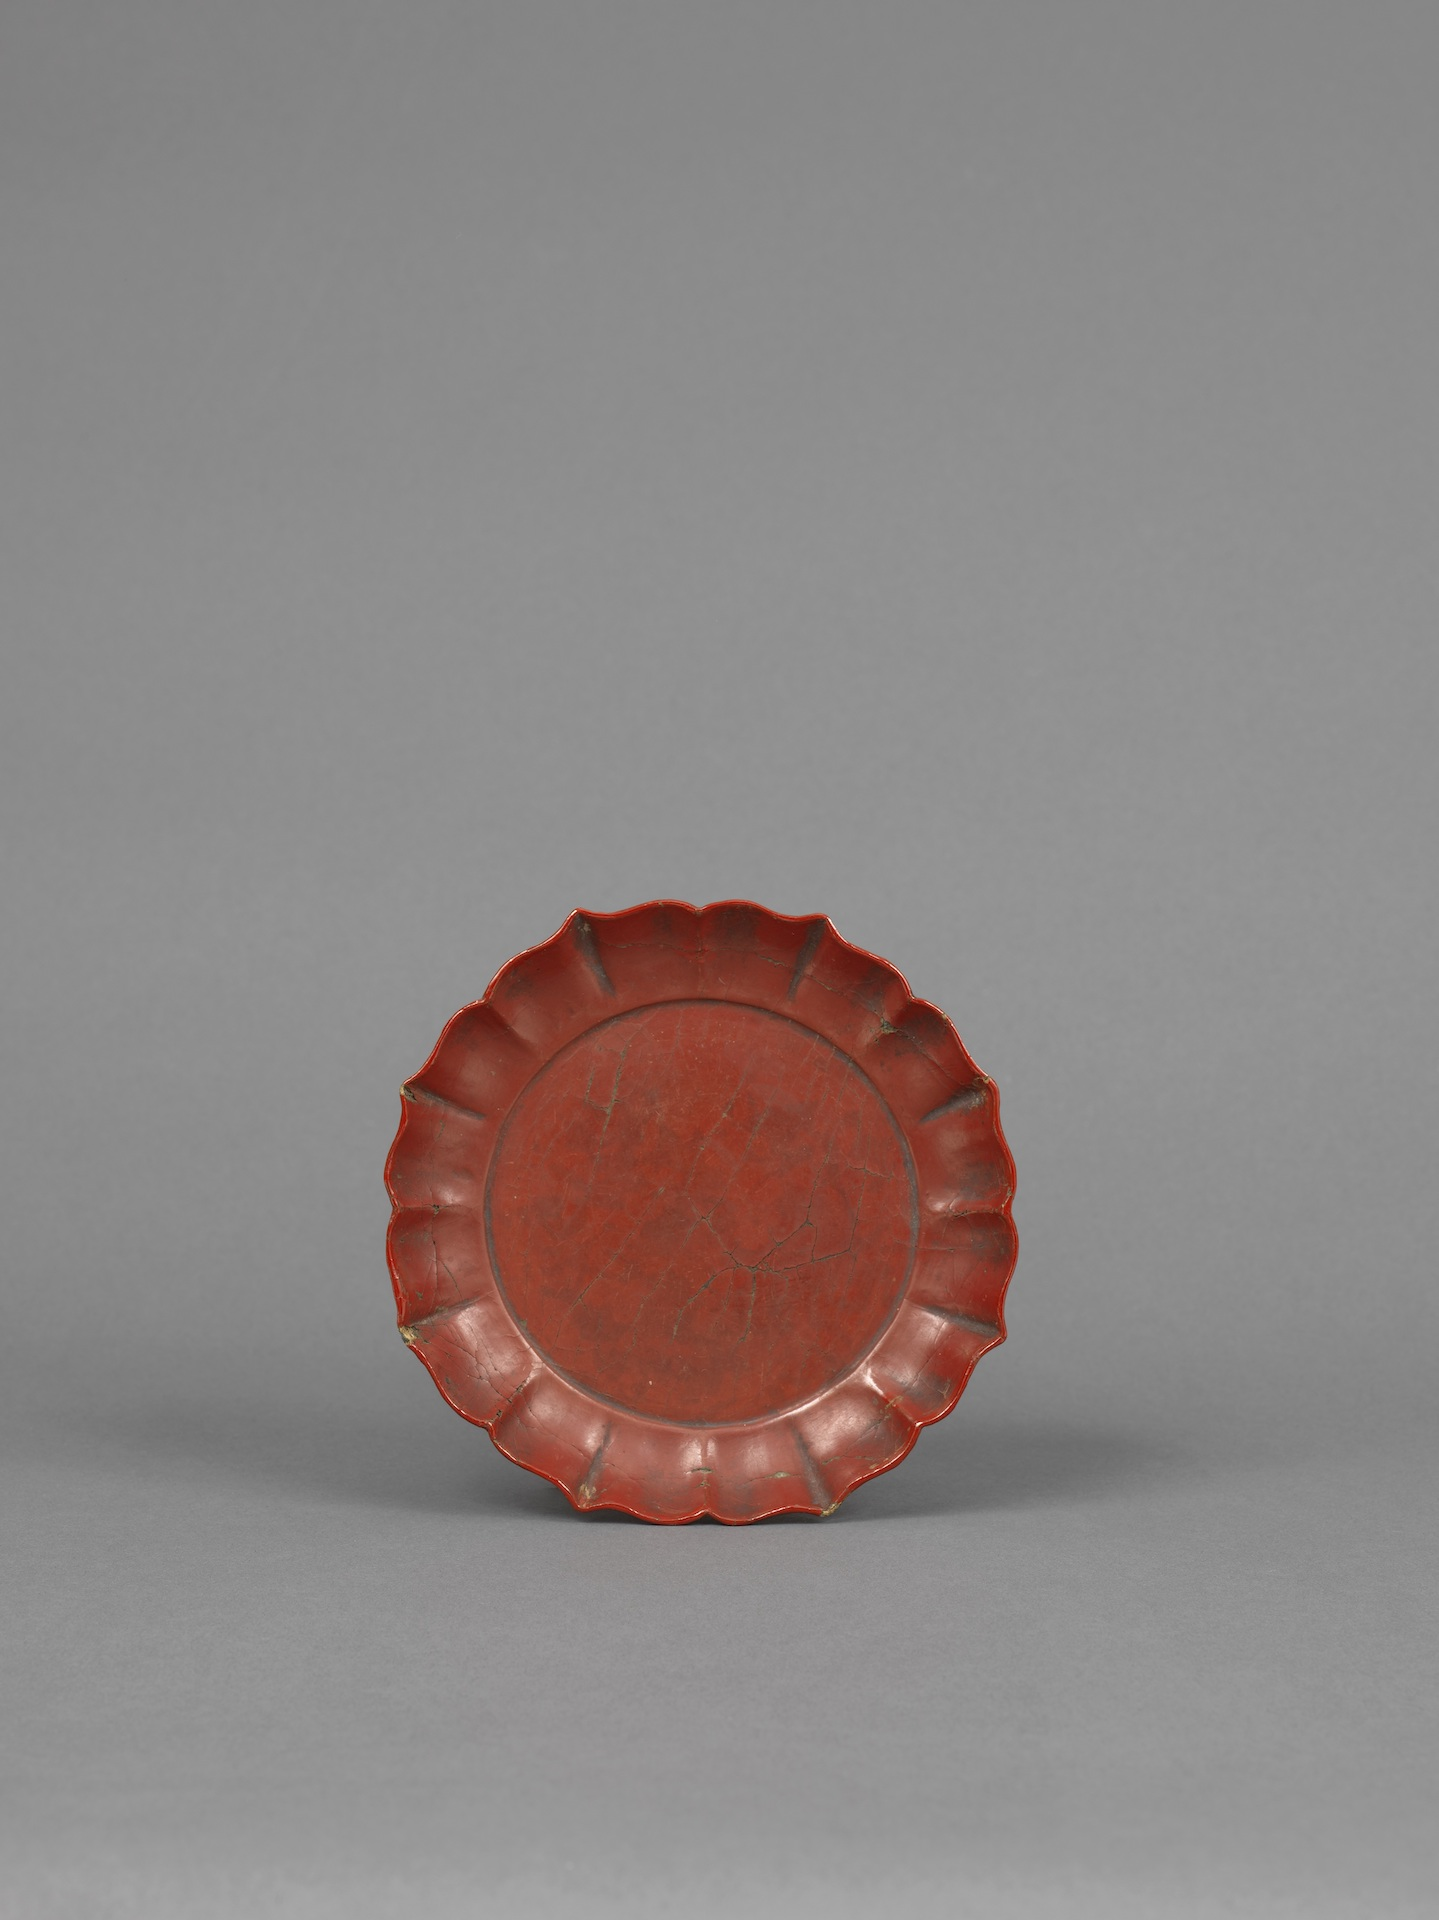 A RED LACQUER EIGHT-PETALLED FLOWER-SHAPED SMALL DISH  Southern Song dynasty (1127-1279) or Yuan dynasty (1279-1368) Diameter: 14.2 cm, 5½ inches